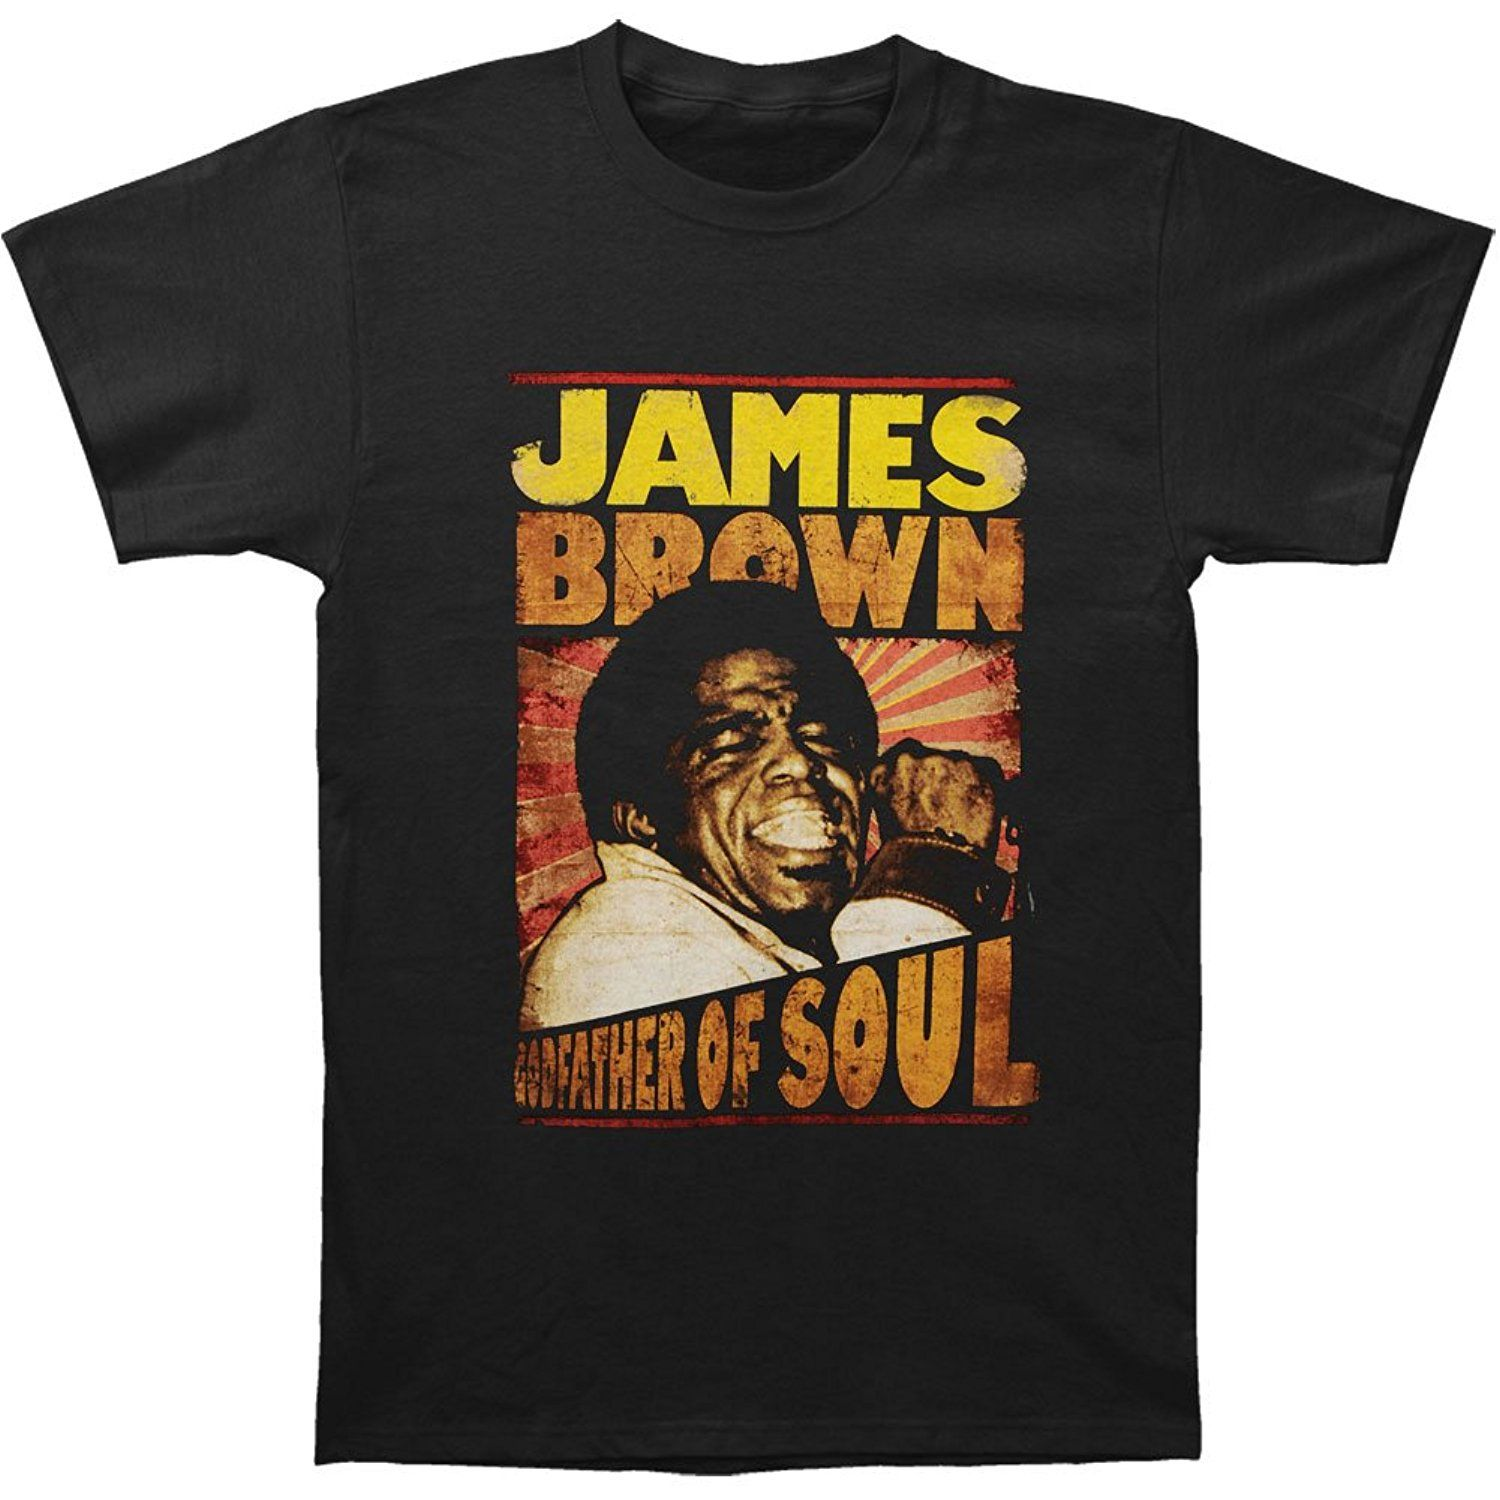 Printed T Shirts Hipster Tee	Cotton Crew Neck James Brown Men's Godfather Of Soul T-shirt Black Short-Sleeve Shirts For Men